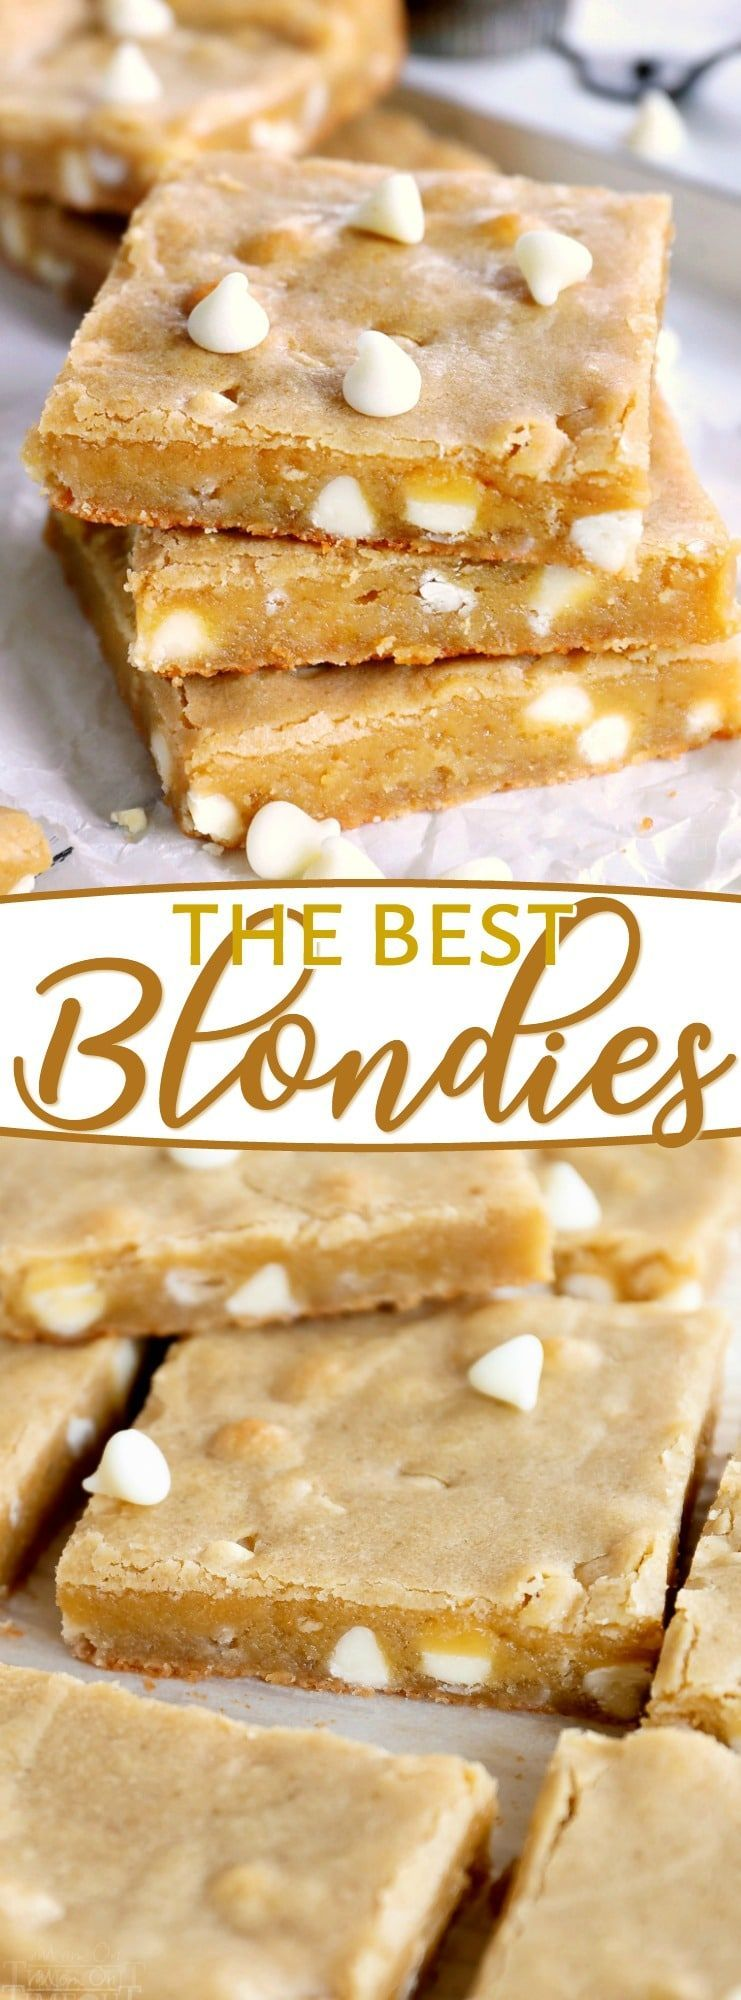 The Best Blondies Ive ever had This easy onebowl blondie recipe yields extra chewy buttery rich blondies with hardly any effort at all  Mom On Timeout Desserts